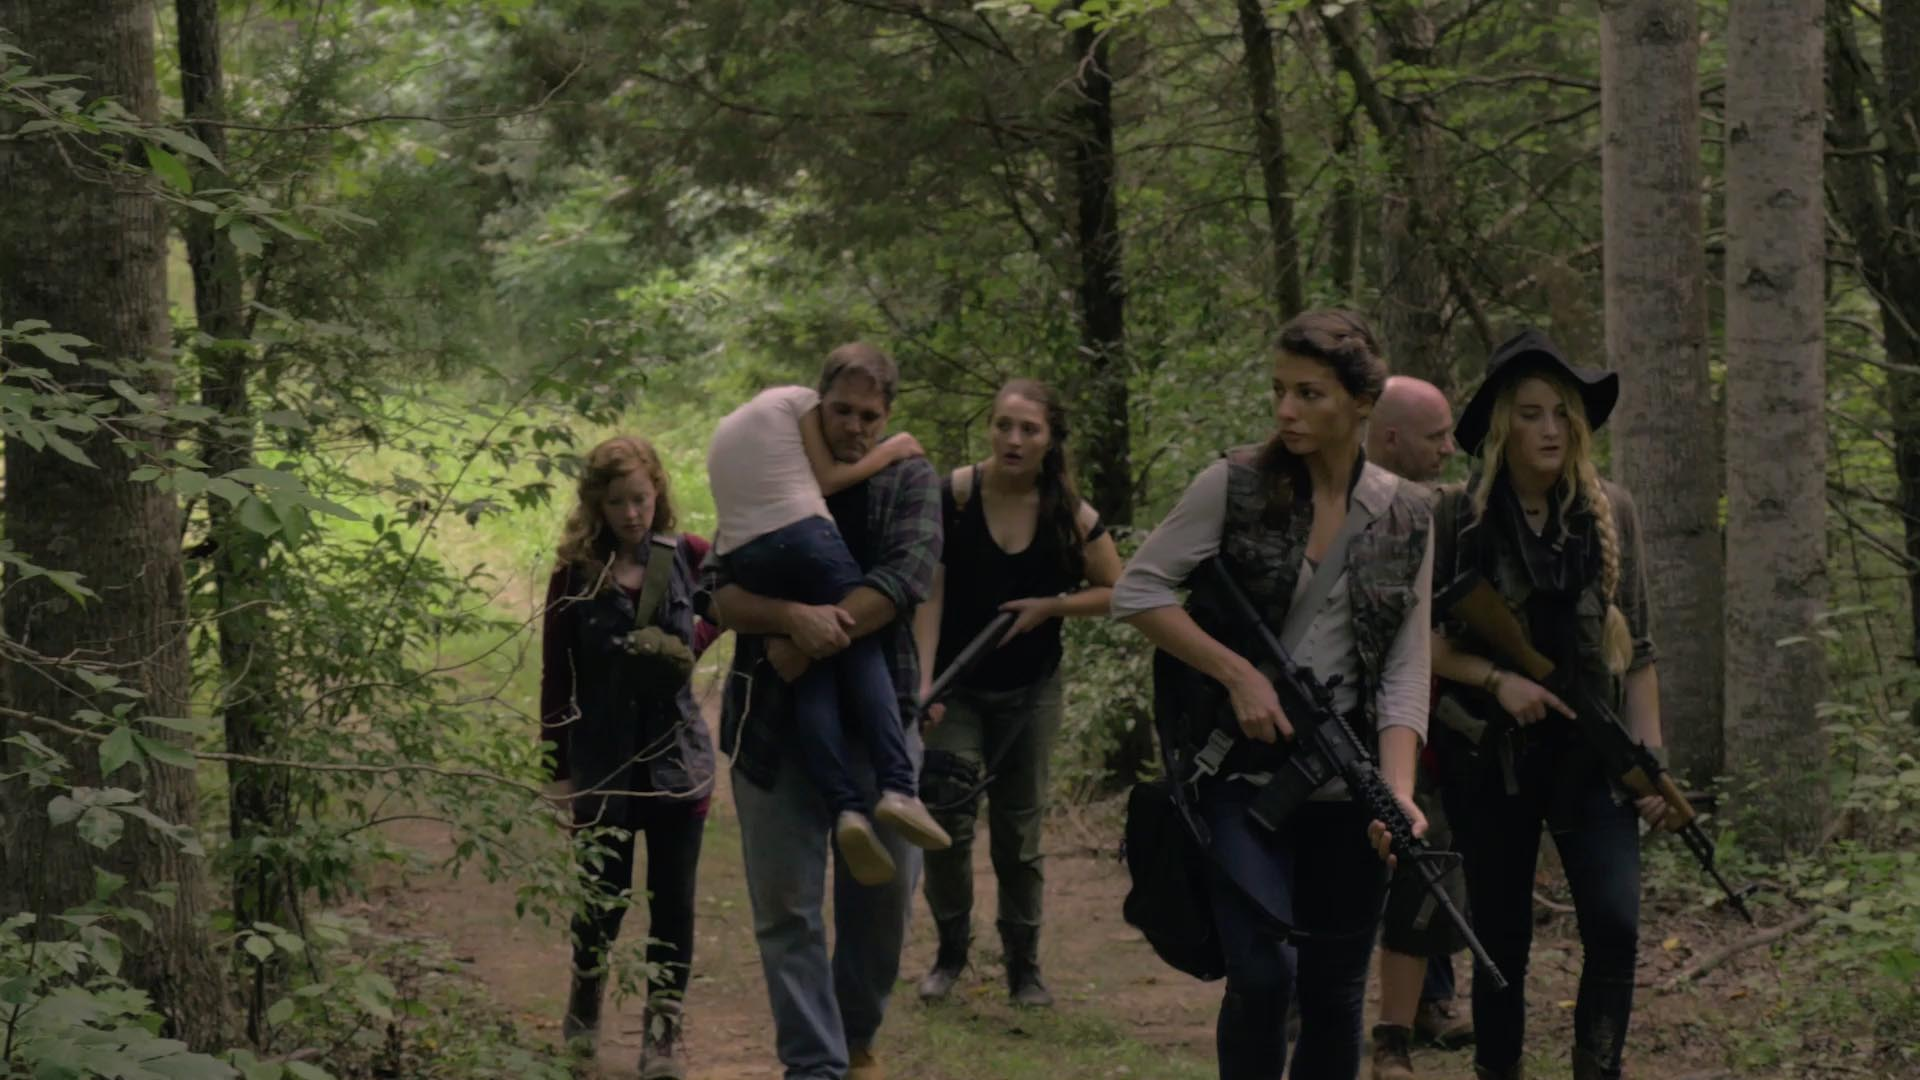 DAILY BREAD - (dir: Nina May/USA/7 min)Seven millennial women, the cast and crew of a cooking show, are stranded on a farm when a solar flares strands them. While they are clueless about what has happened, a prepper camp near by has been monitoring the flares and are ready… Check out this sizzle reel for the fantastic new post-apocalyptic series Daily Bread.